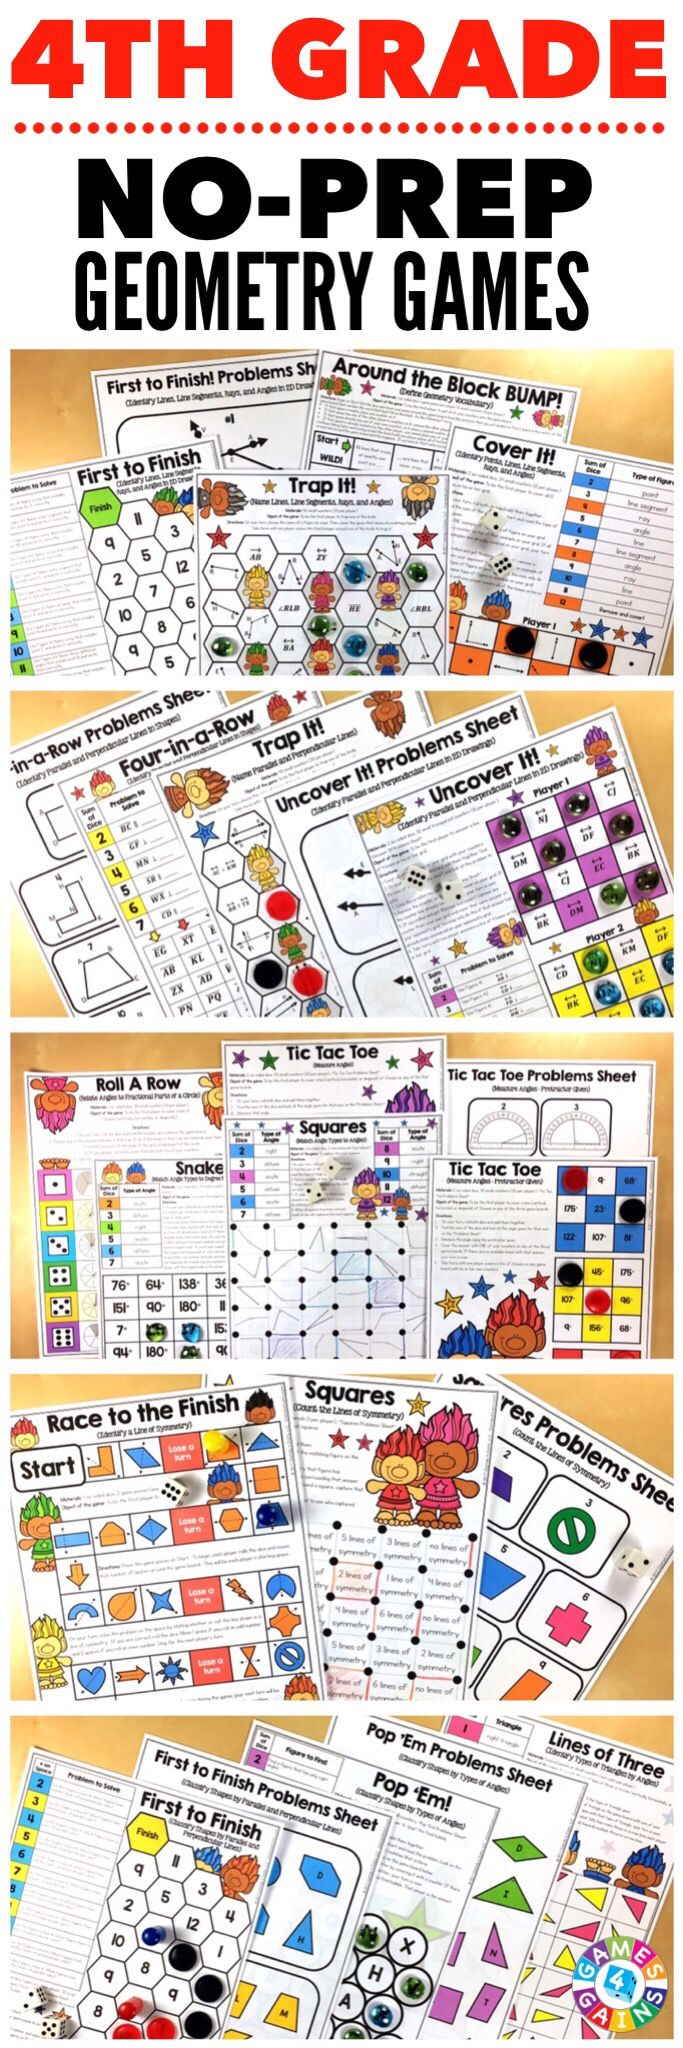 """Kids are LOVING these games during rotation time to reinforce standards."" This 4th Grade Geometry Games Pack includes 20  differentiated games for practicing naming lines, line segments, rays, and angles, identifying parallel and perpendicular lines, identifying types of angles, measuring angles, classifying shapes, identifying lines of symmetry, and more! These games support the 4th grade CCSS geometry standards {4.G.1, 4.G.2, 4.G.3, 4.OA.5, 4.MD.5, 4.MD.6, 4.MD.7}."